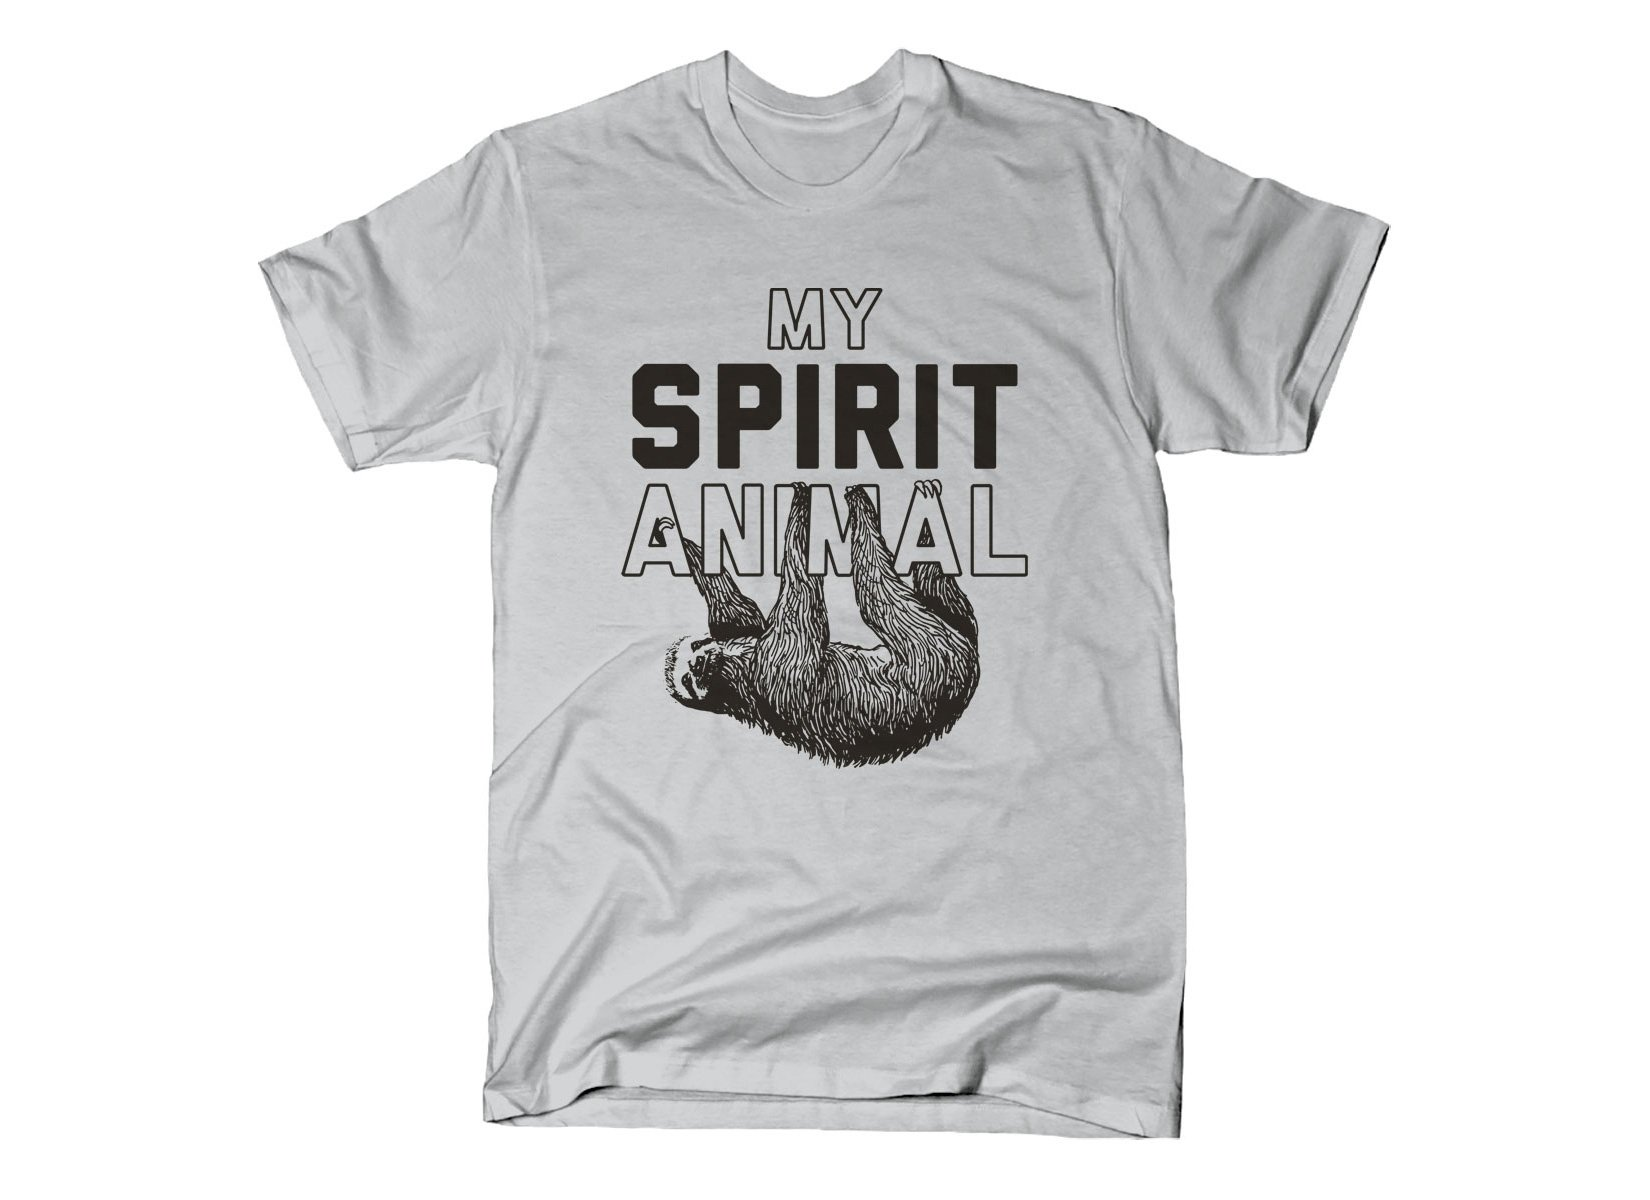 My Spirit Animal on Mens T-Shirt